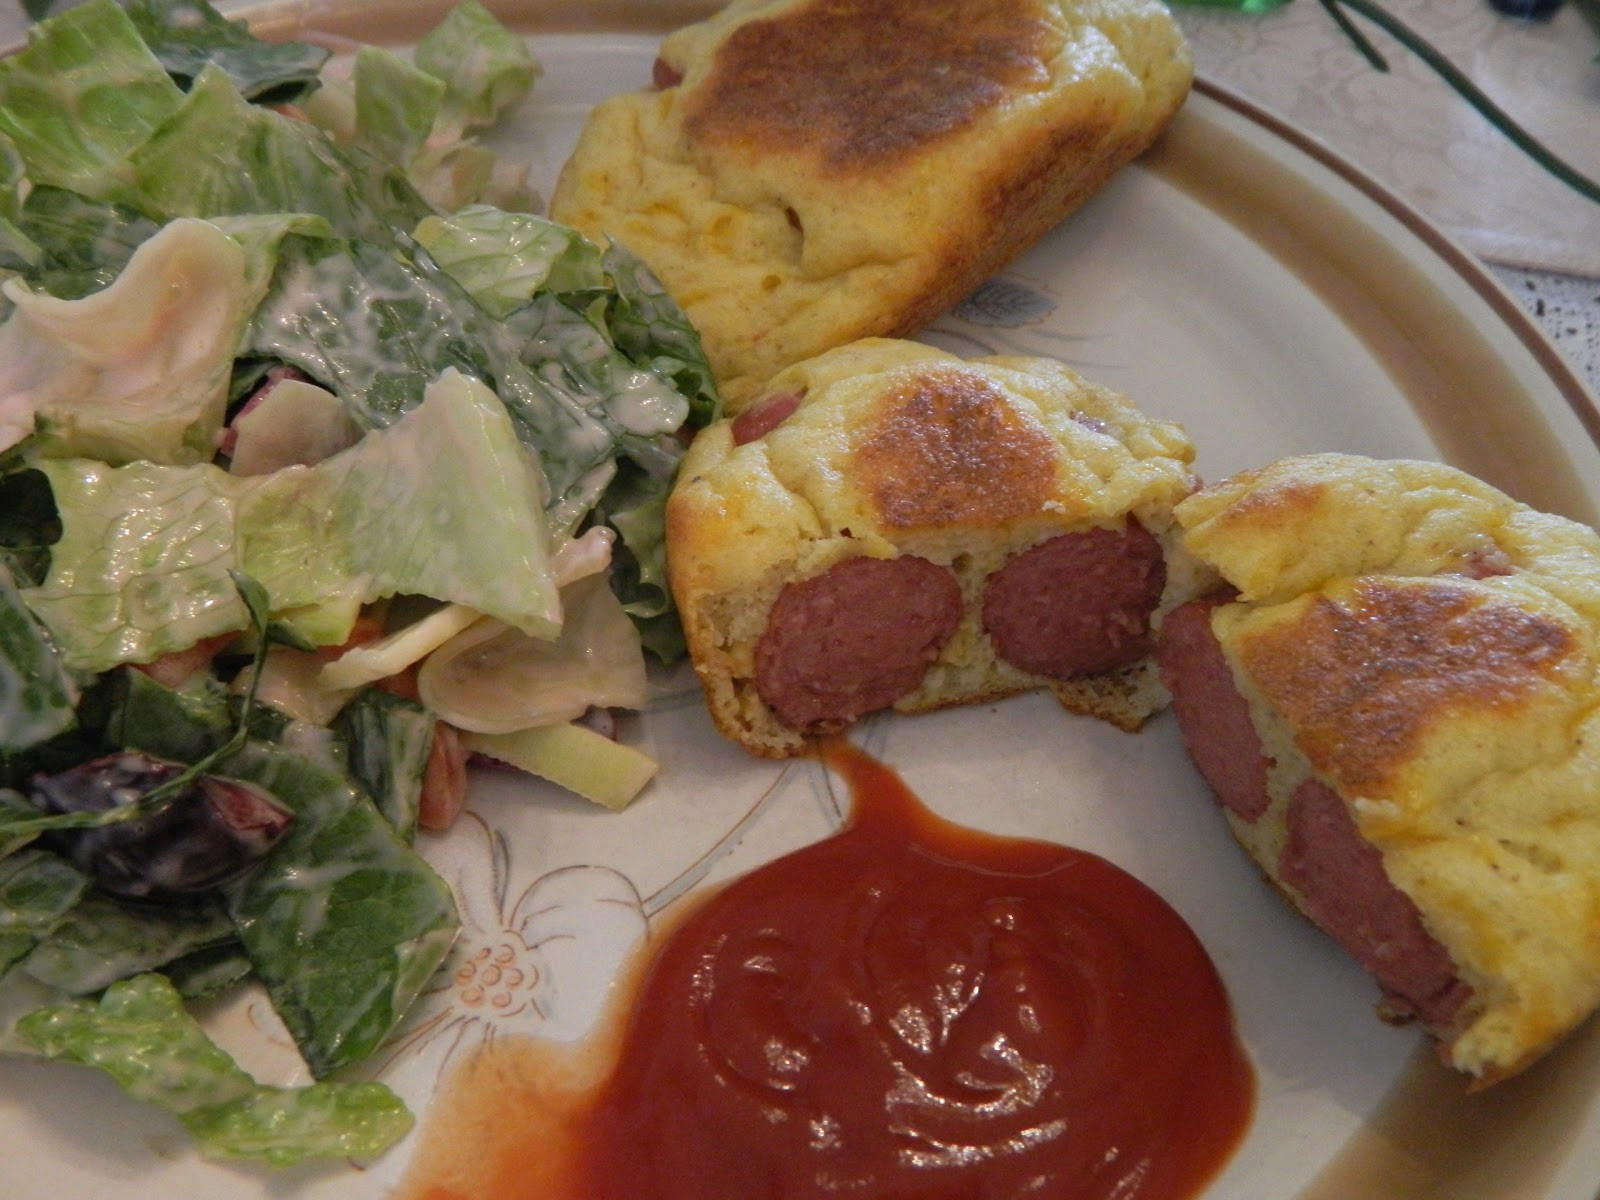 Low Carb Hot Dog Recipes  Ginny s Low Carb Kitchen HOT DOGS IN A BUN